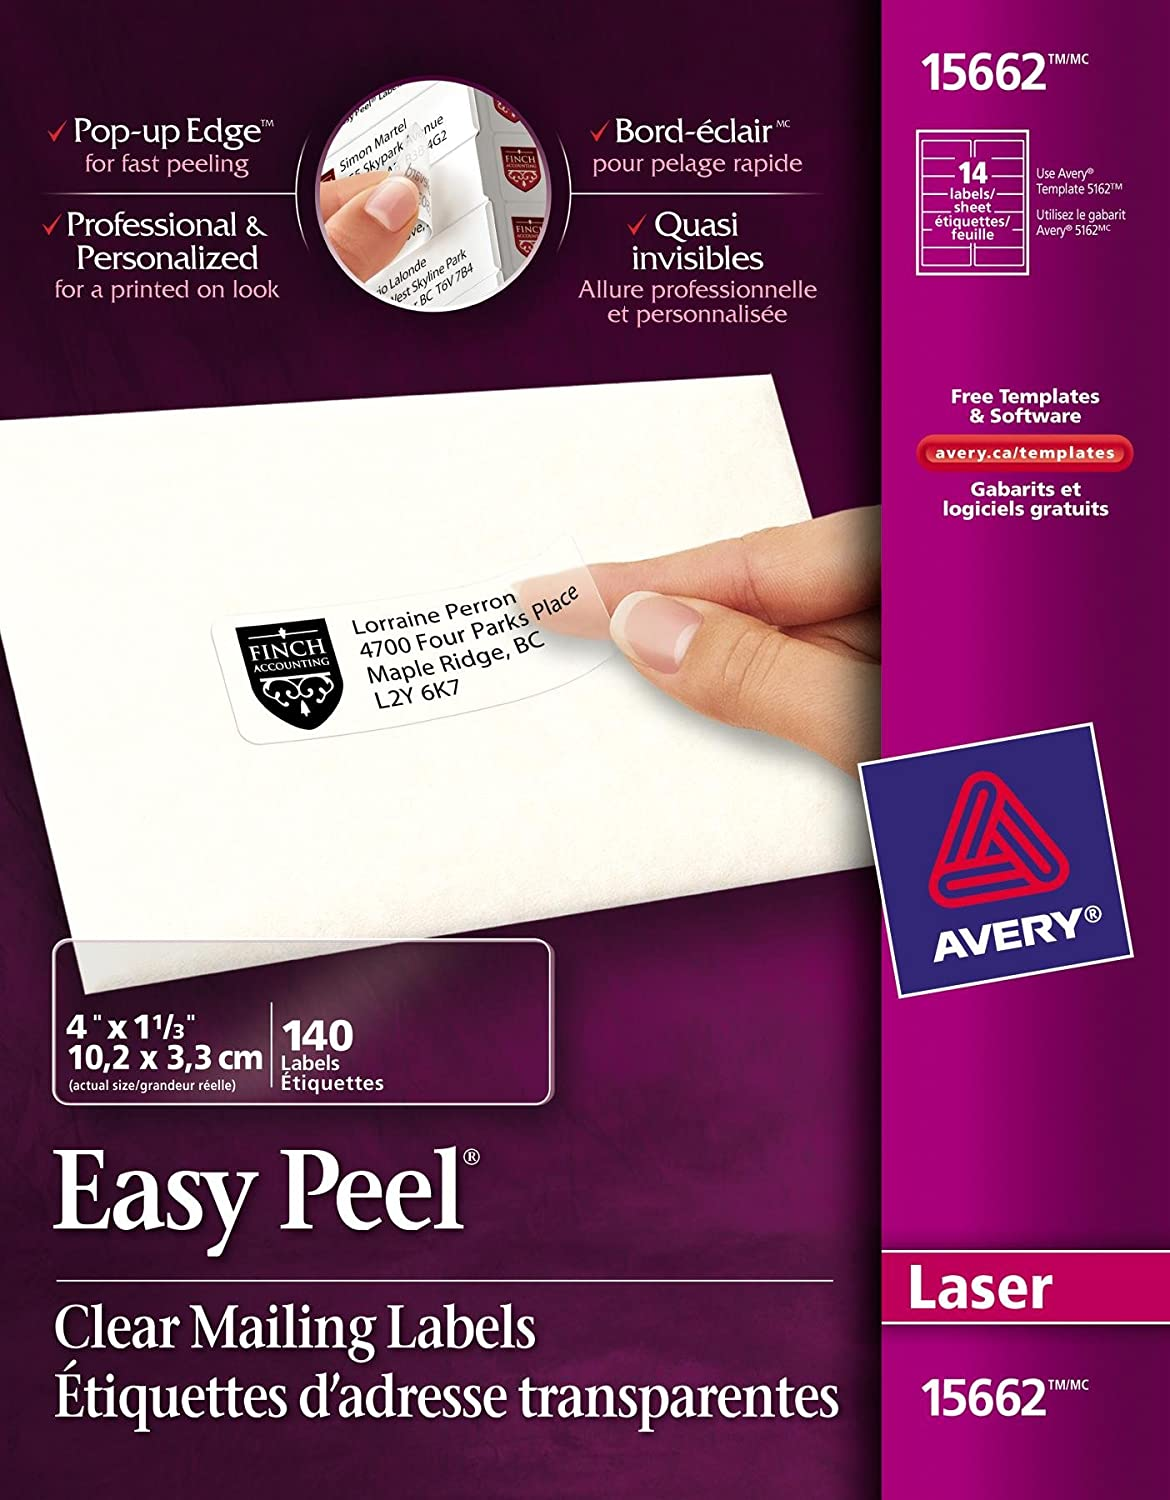 amazon com avery easy peel mailing labels for laser printers 1 1